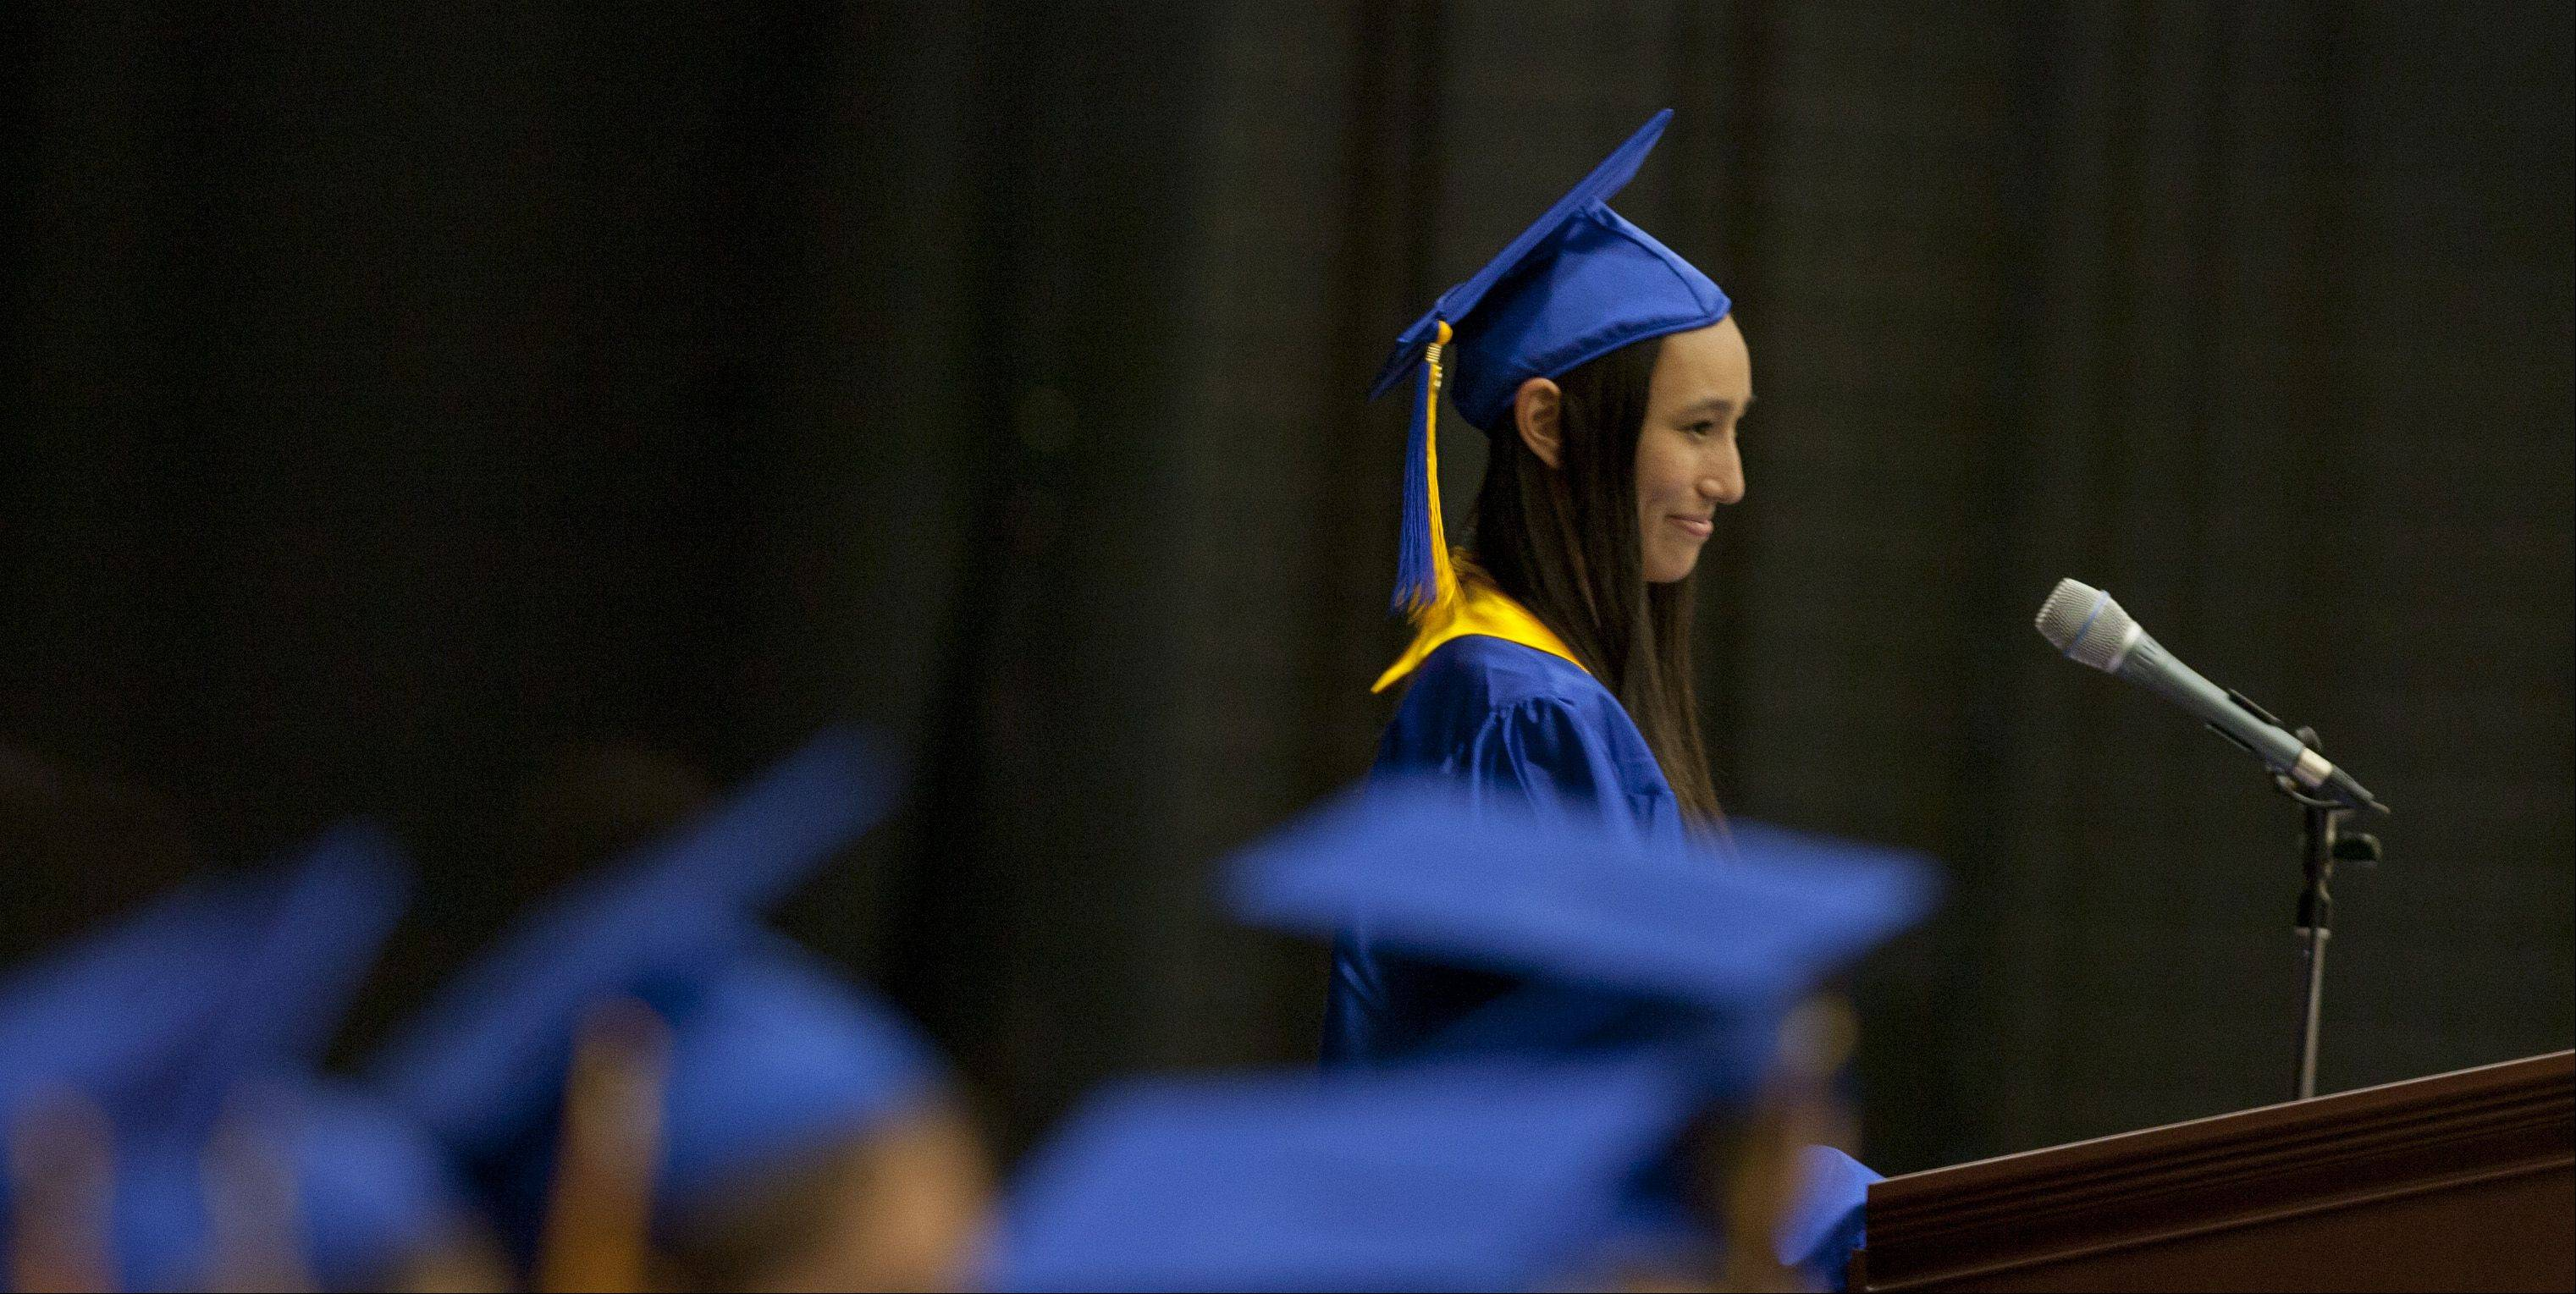 Wheaton North High School held its graduation ceremony Saturday at The College of DuPage in Glen Ellyn.